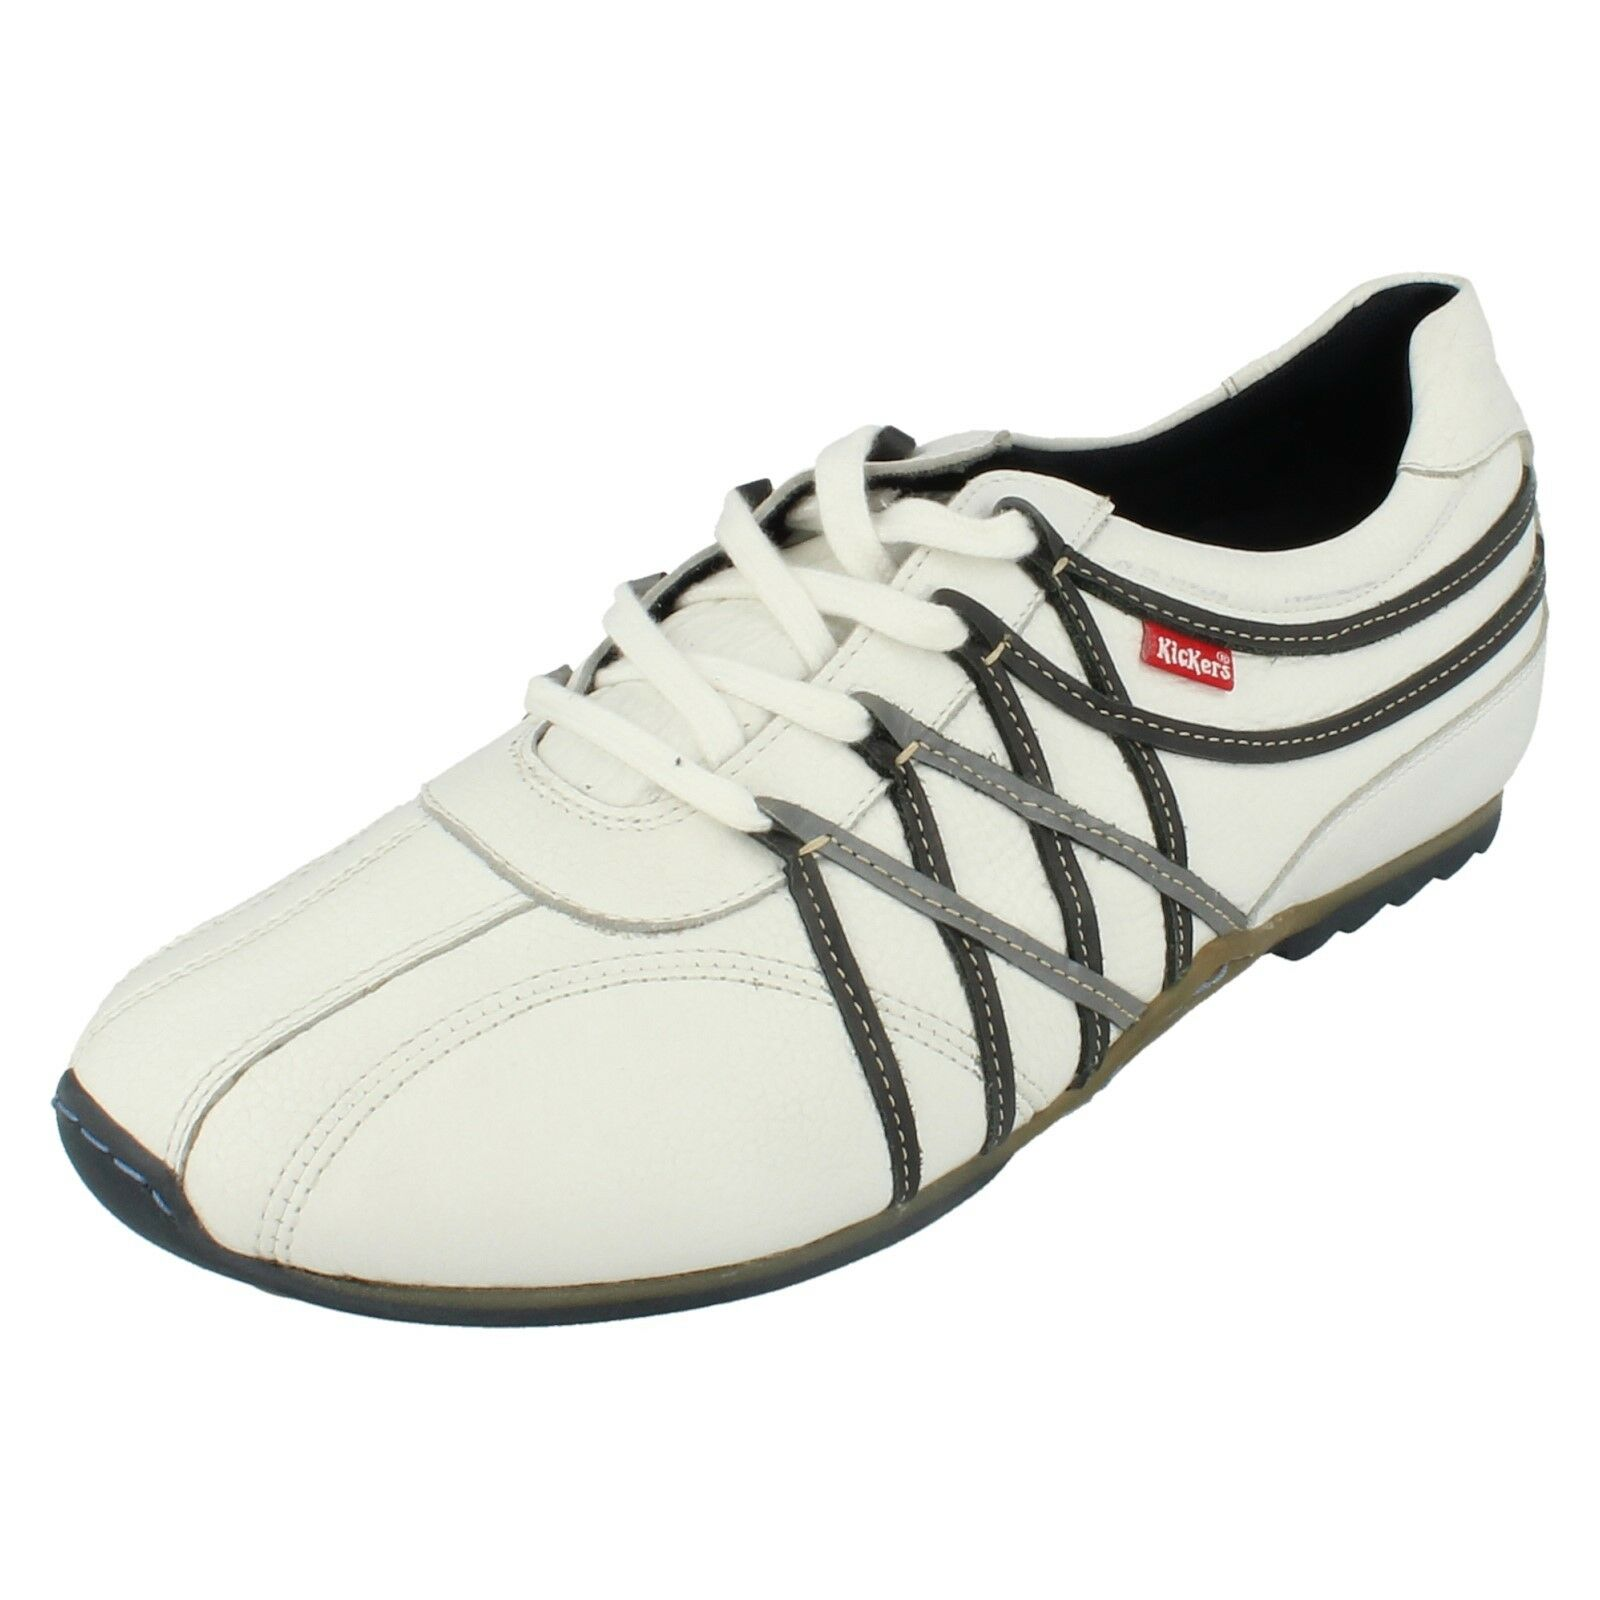 Mens Kickers Lace Up Casual shoes Zero Lace 3